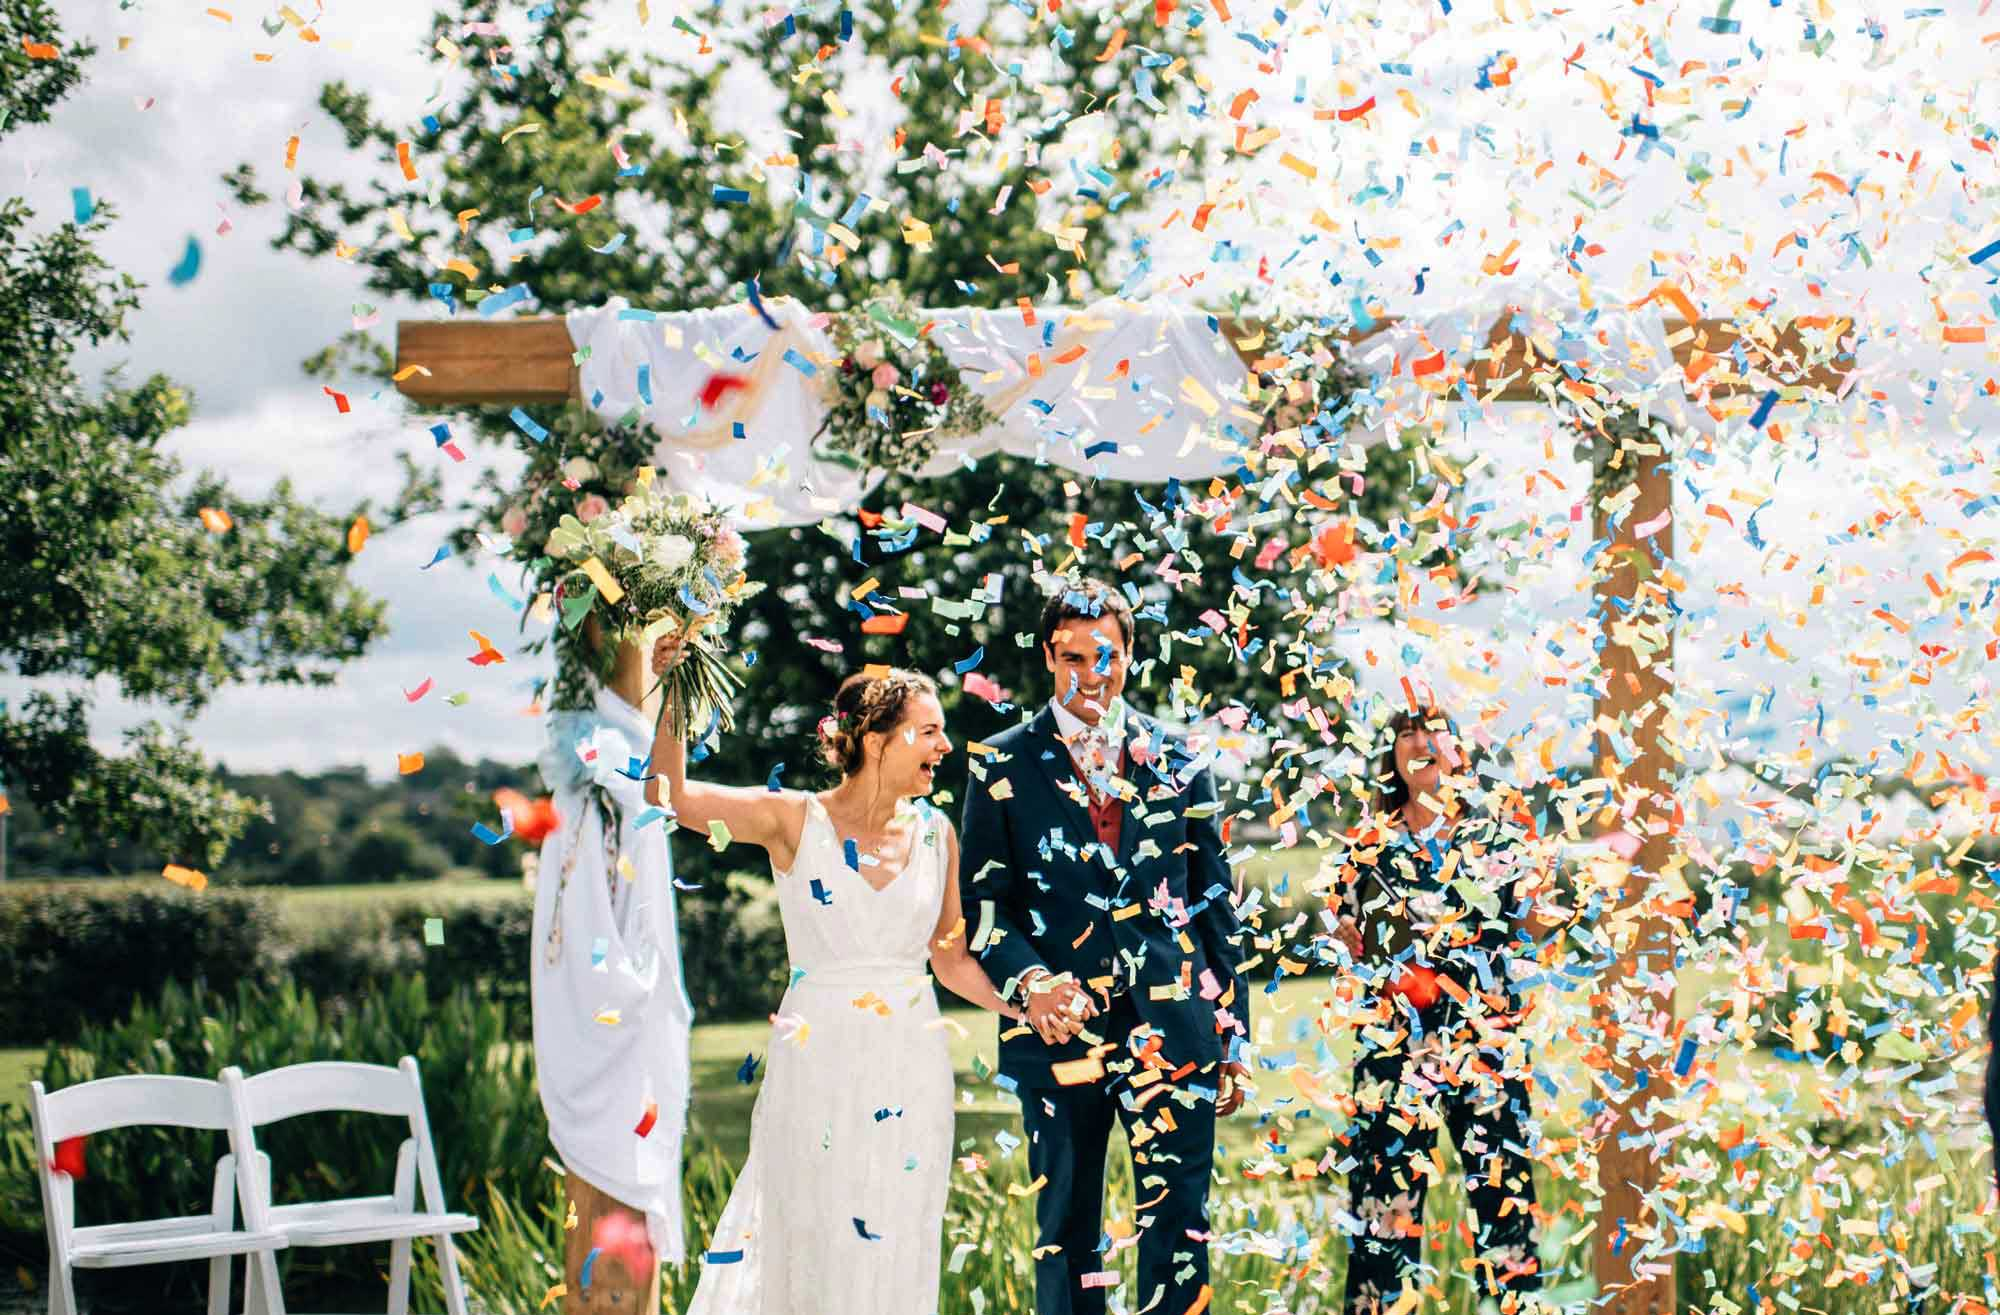 Ella and Rory celebrating their humanist wedding in the countryside with confetti